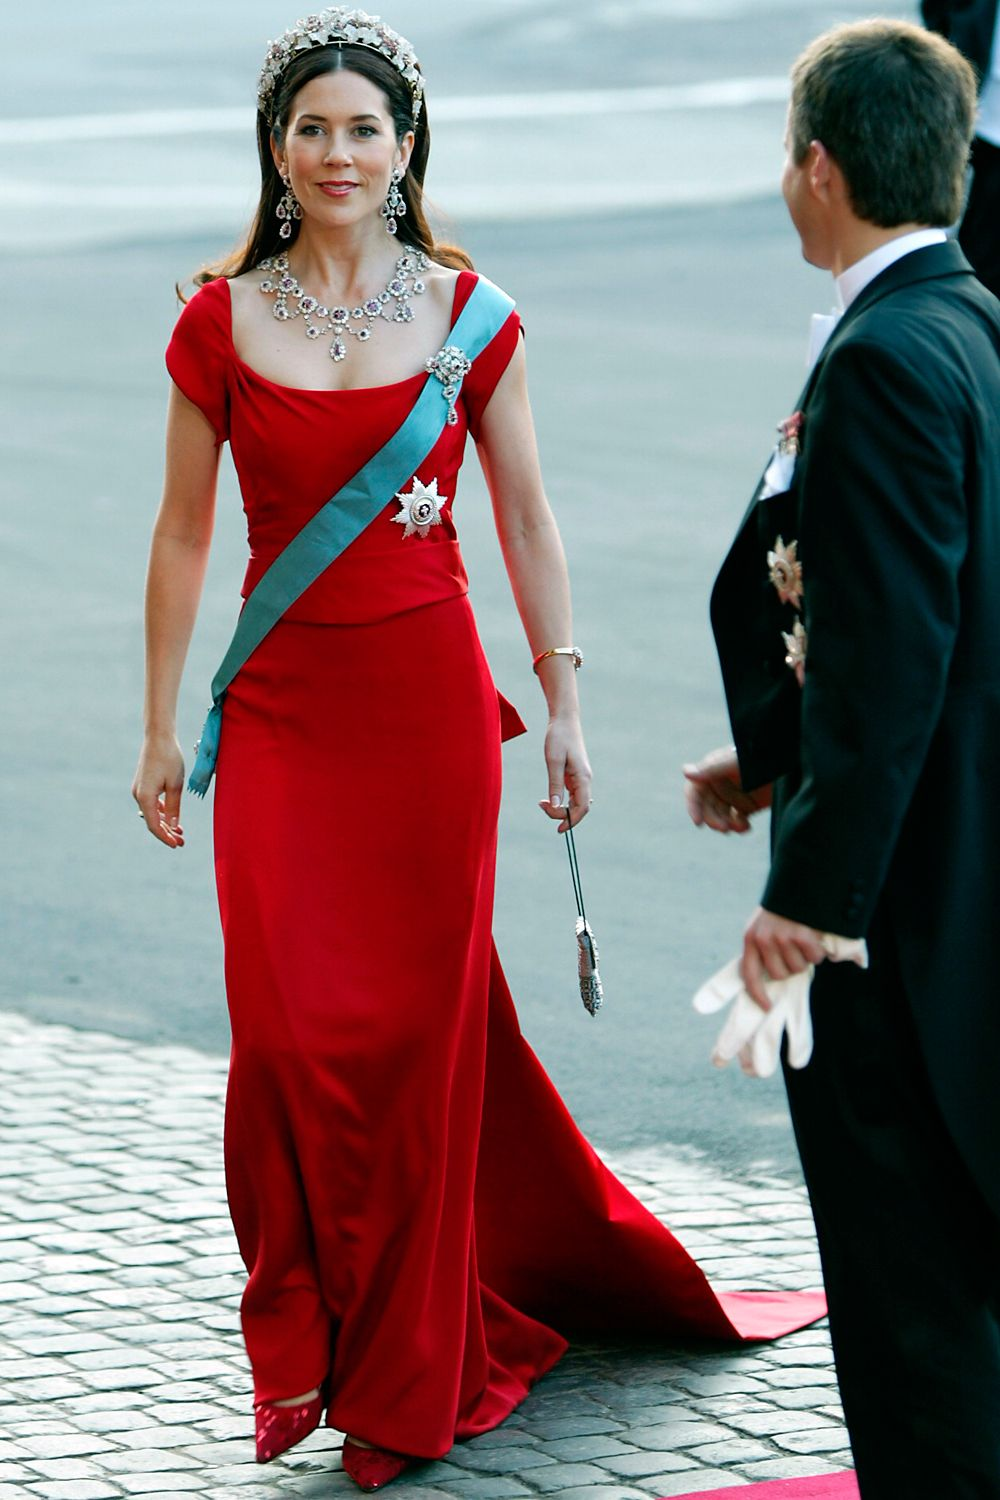 Bedazzled in jewels before her wedding, Mary Donaldson, now Crown ...